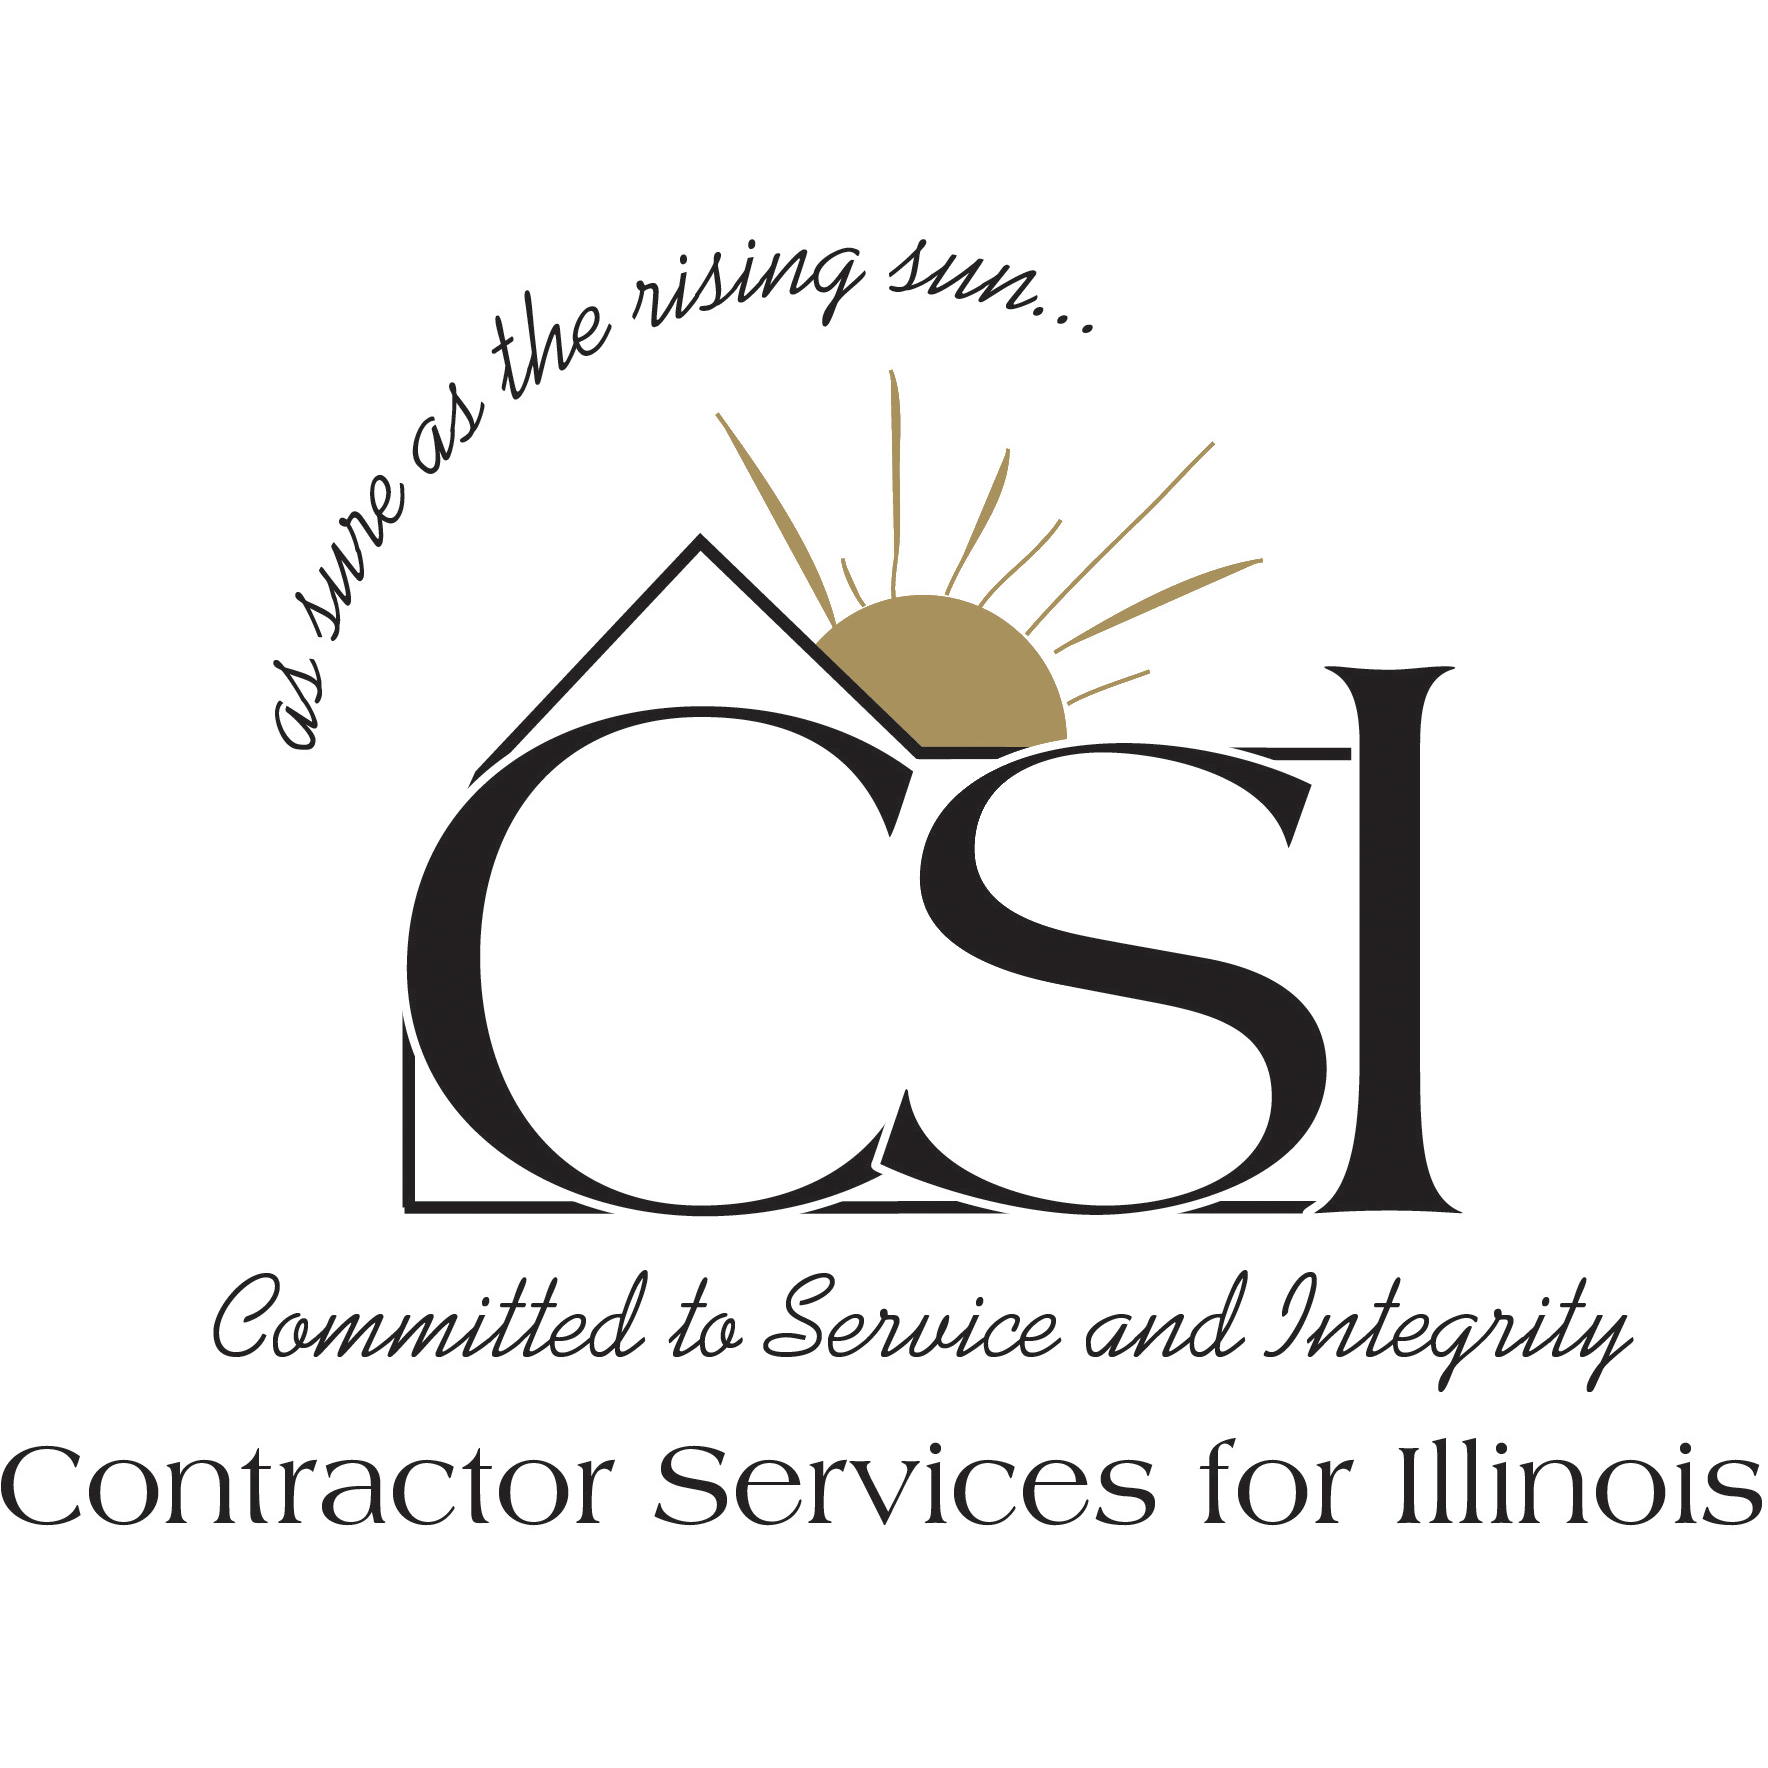 Contractor Services for Illinois Logo